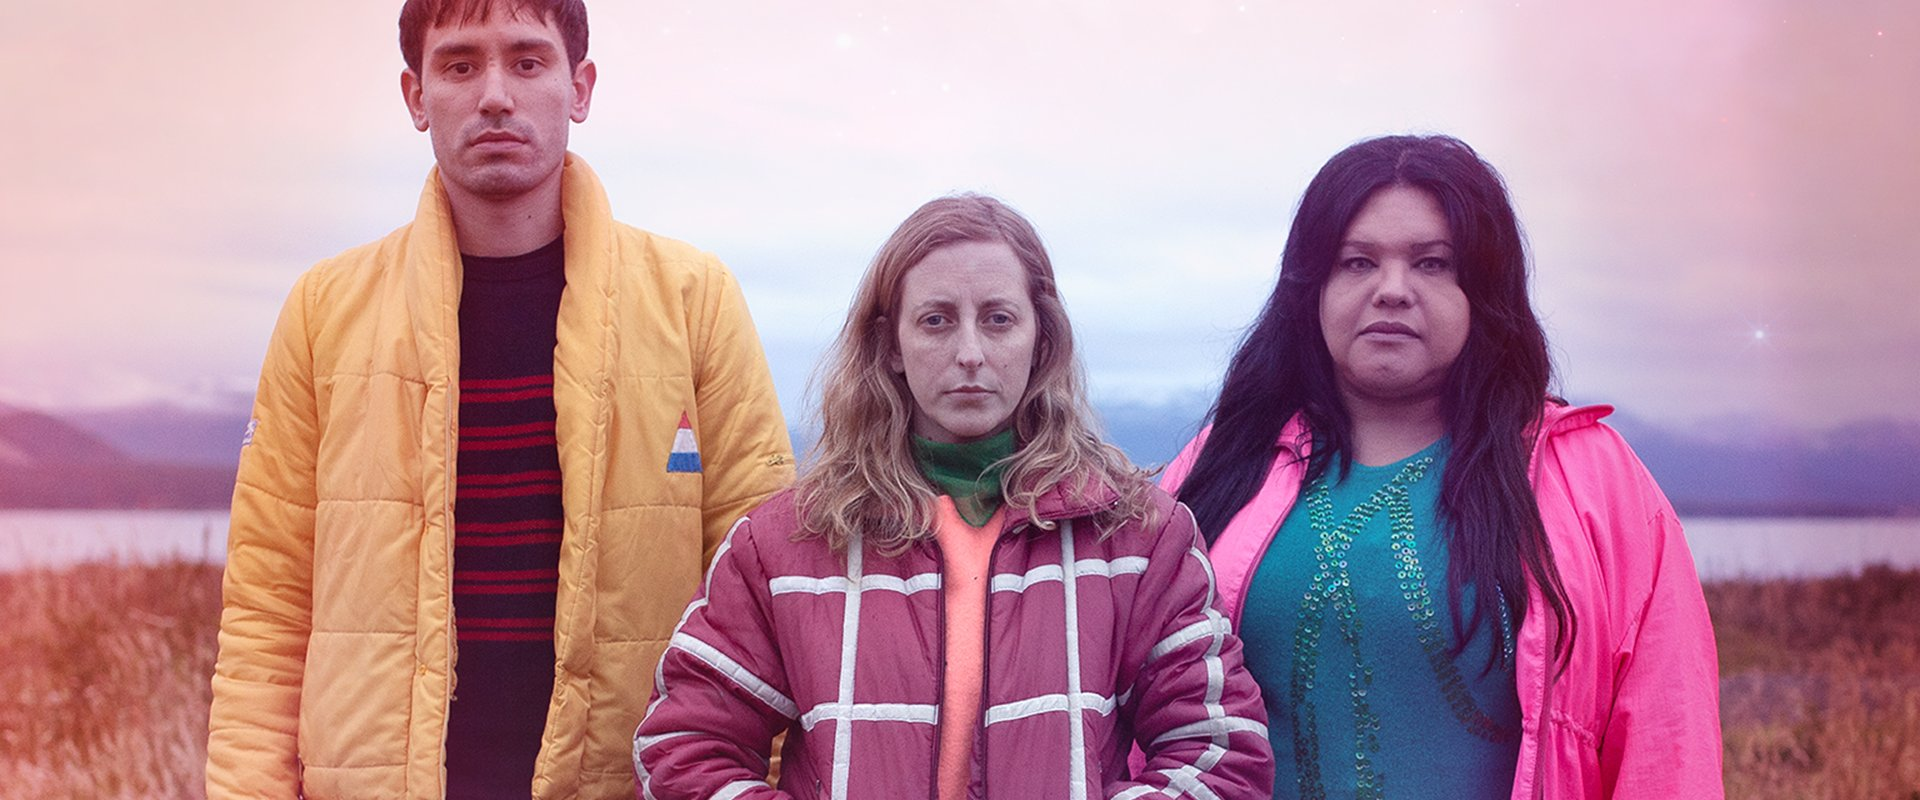 Three people standing in a field in an eerie pink light